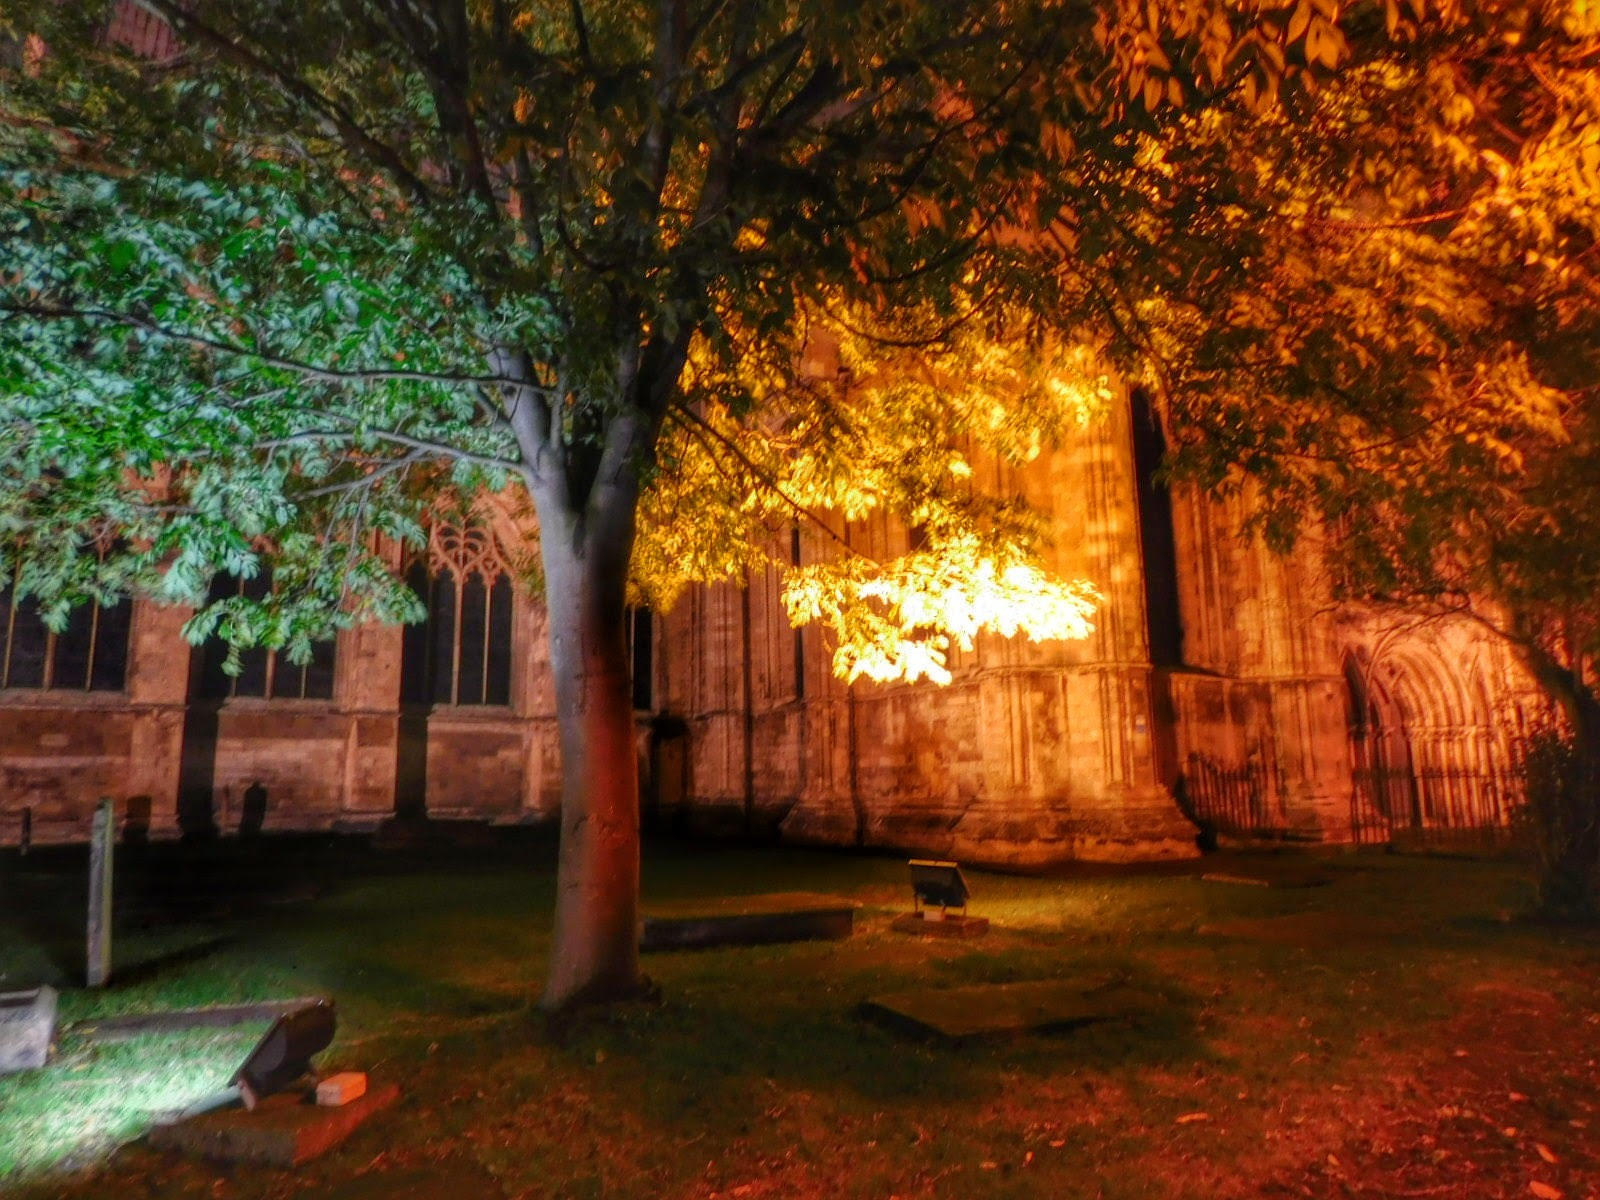 A recent evening walk round Beverley - my home town in the UK  by Sheila Button